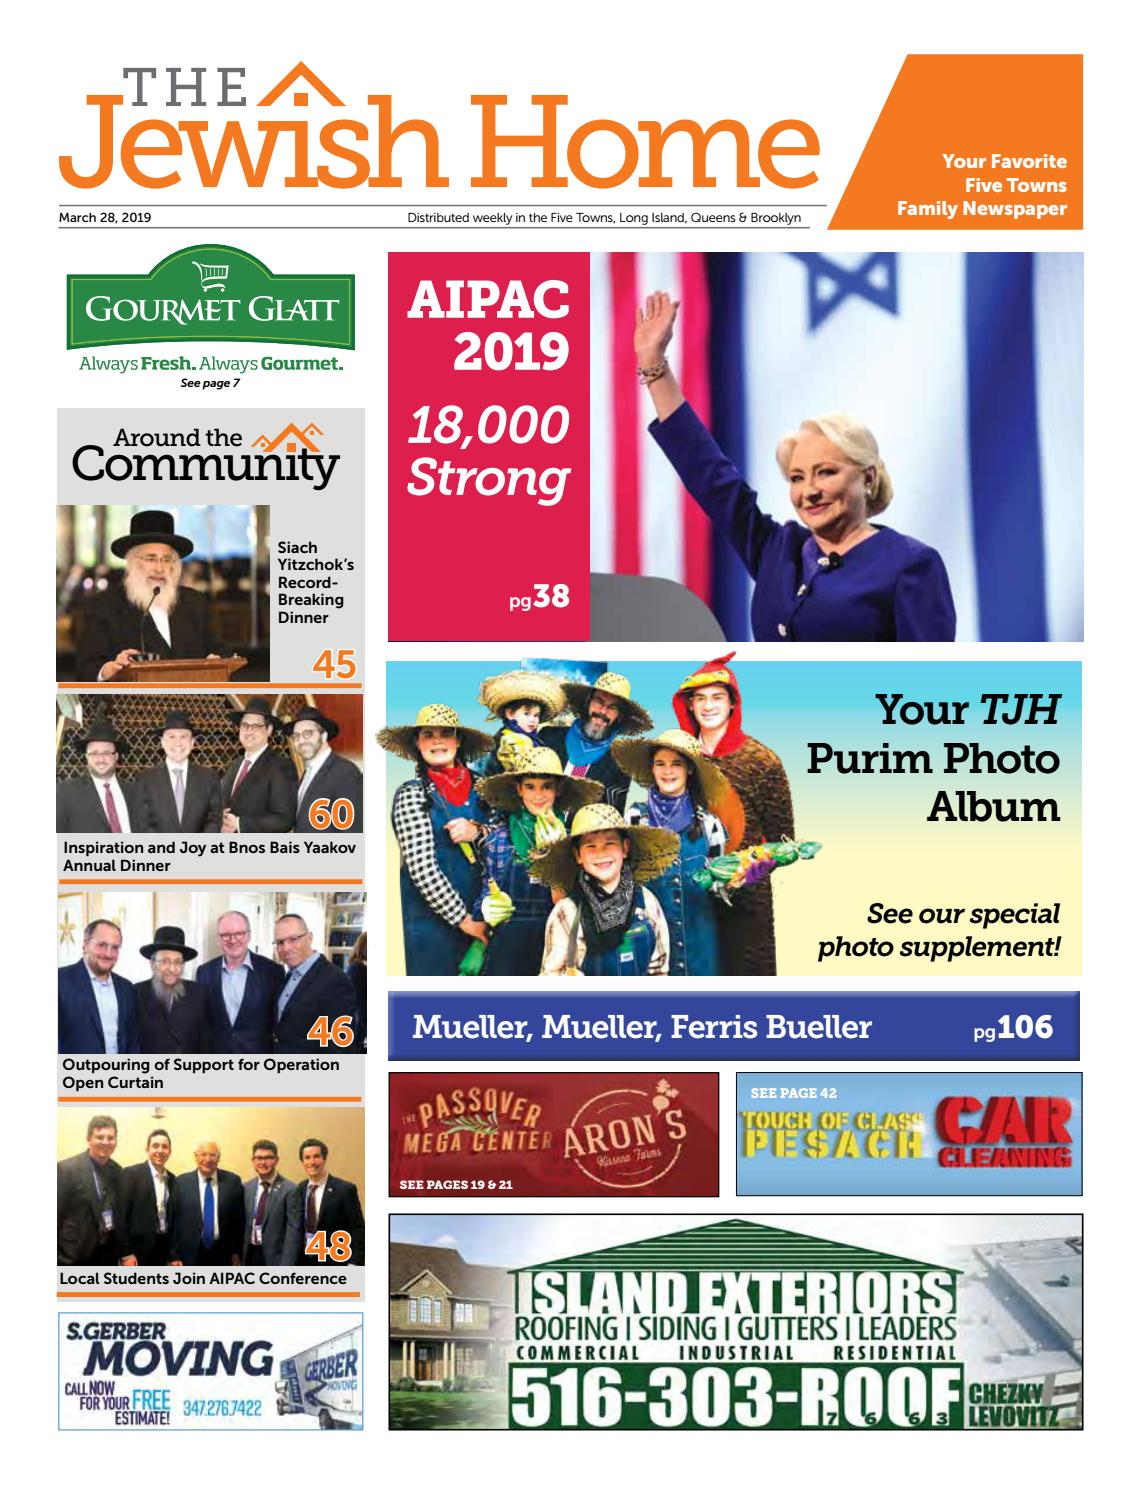 Five Towns Jewish Home - 3-28-19 by Yitzy Halpern - issuu